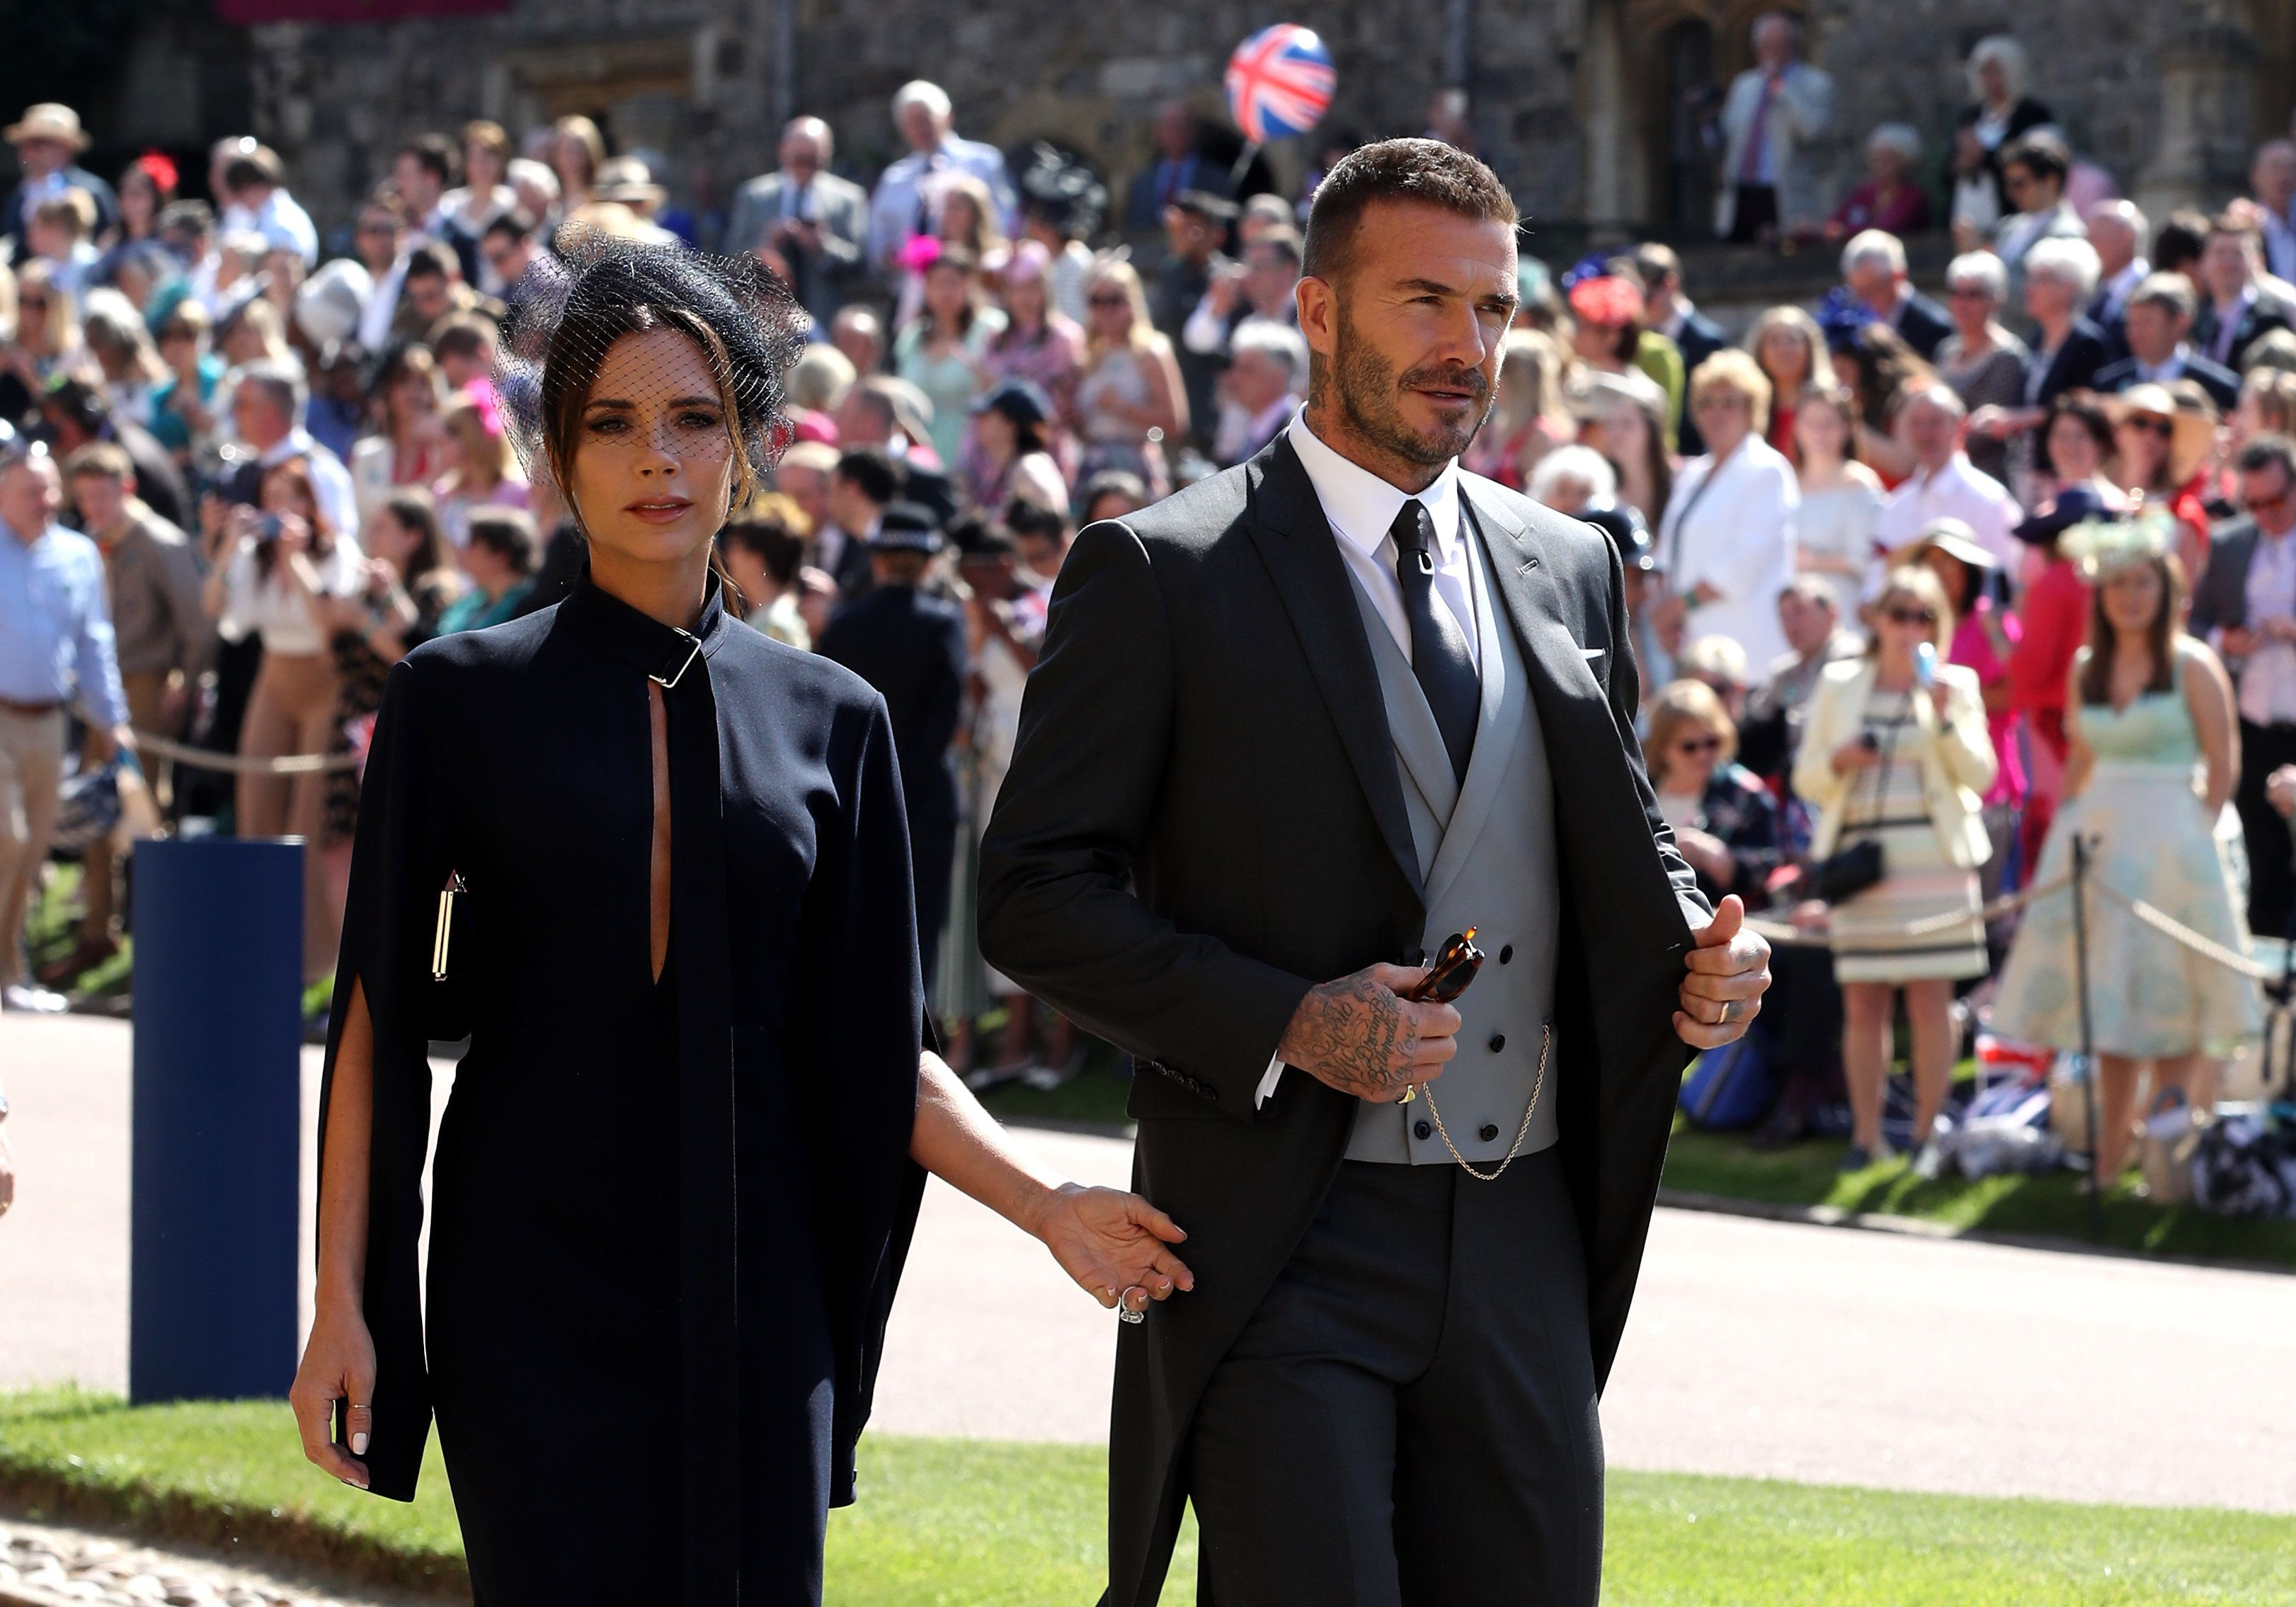 Victoria Beckham Looks Positively Overjoyed To Be At The Royal